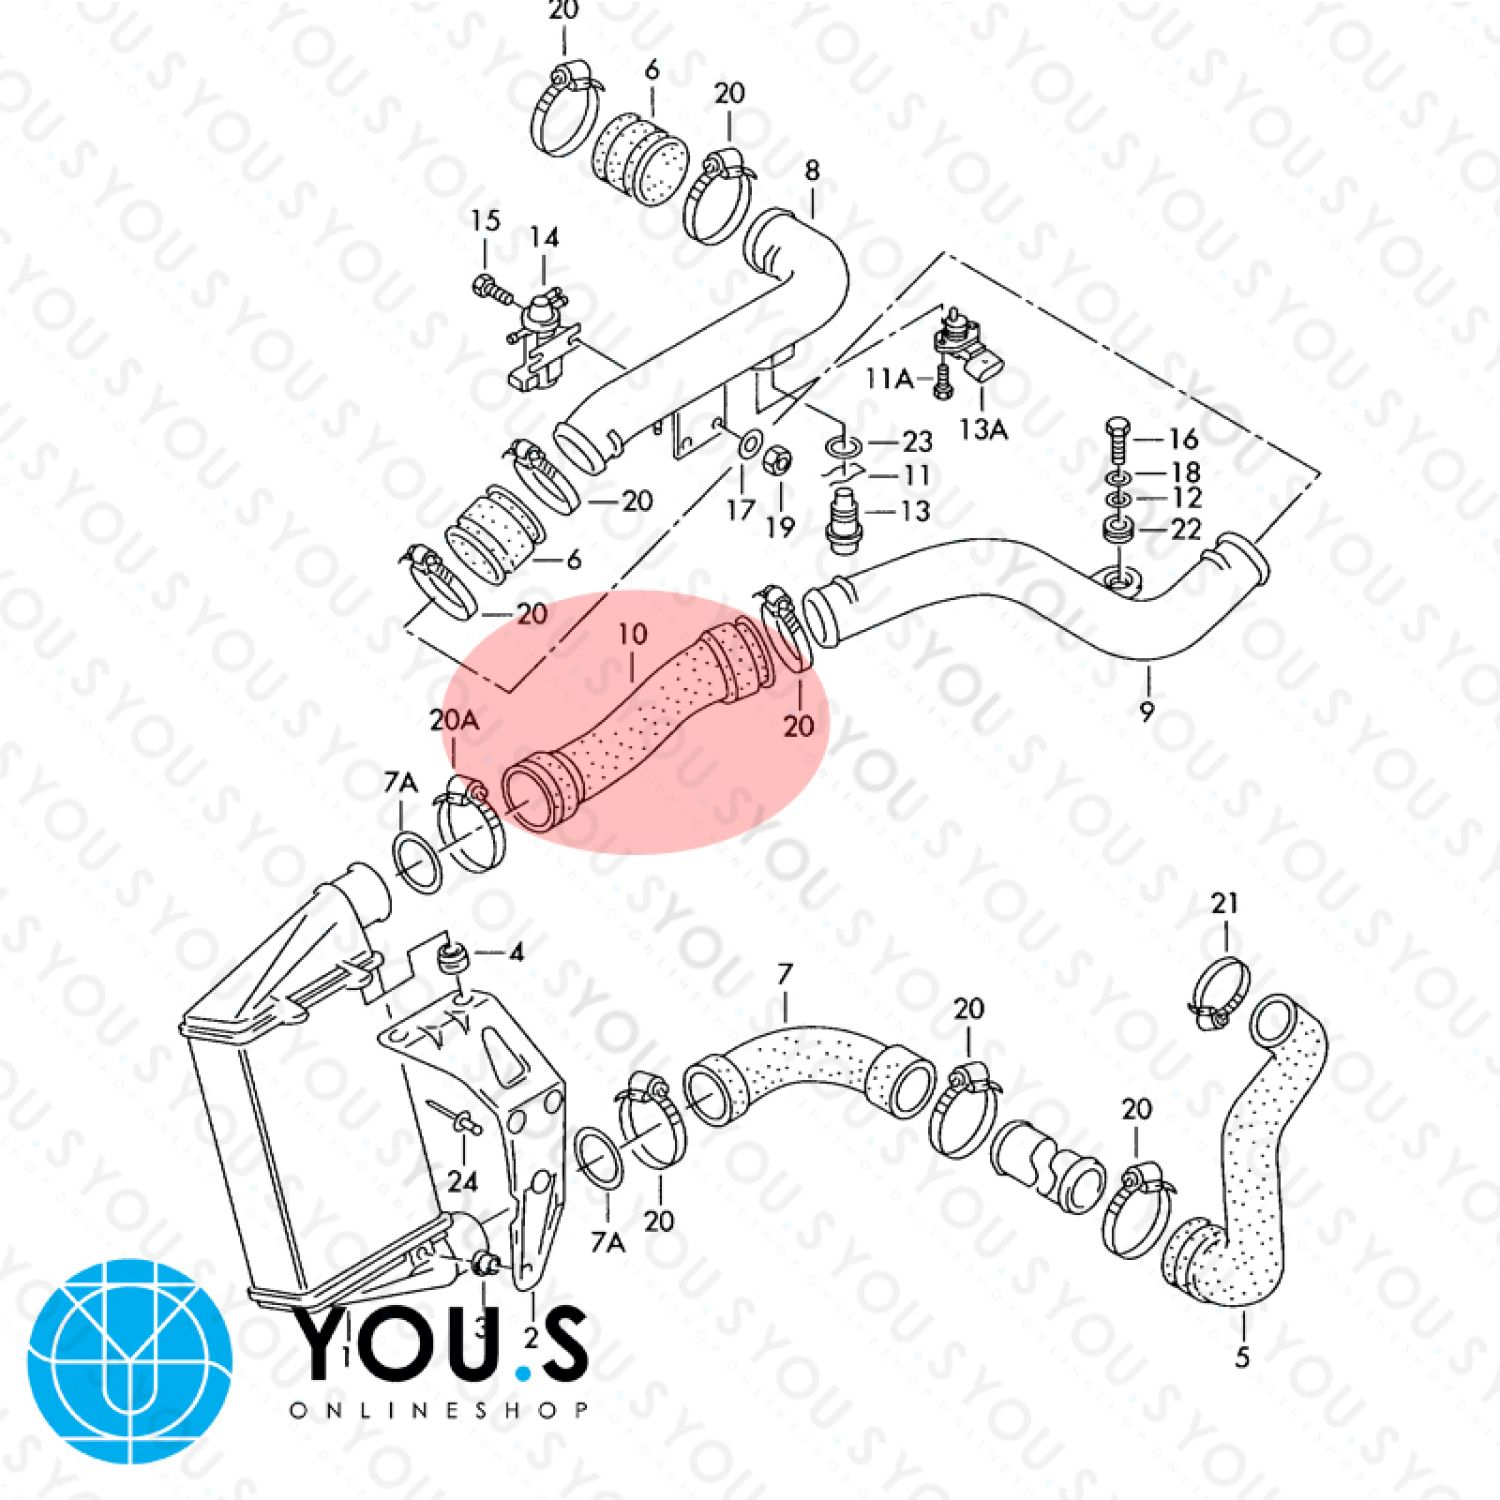 air hose diagram audi a4 14 17 asyaunited de Audi A4 Frost air hose diagram audi a4 4 6 kenmo lp de u2022 rh 4 6 kenmo lp de b5 audi a4 fuse diagram audi a4 relay diagram